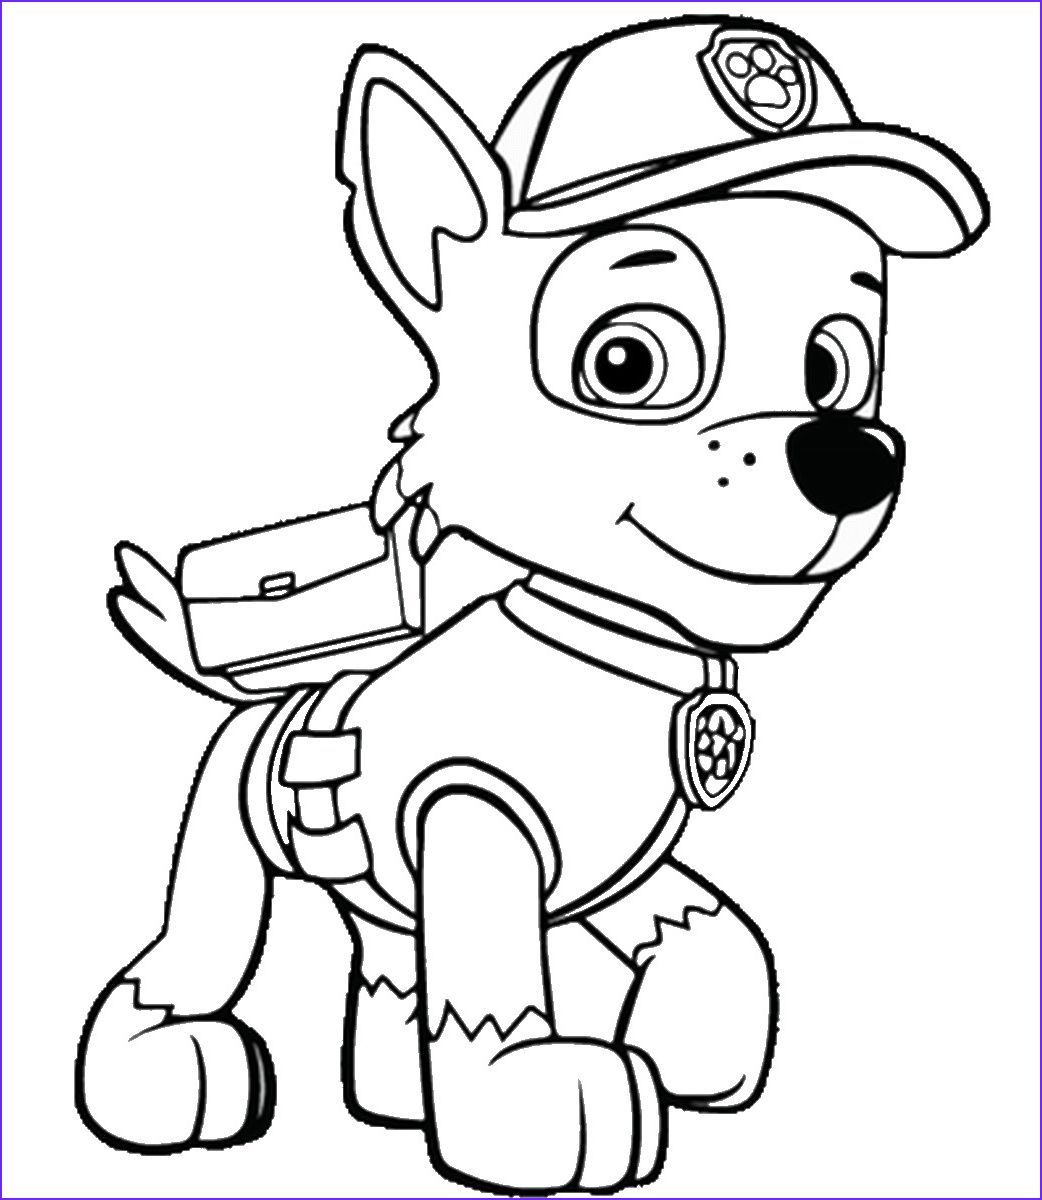 Print Coloring Page Inspirational Photos Paw Patrol Coloring Pages – Birthday Printable